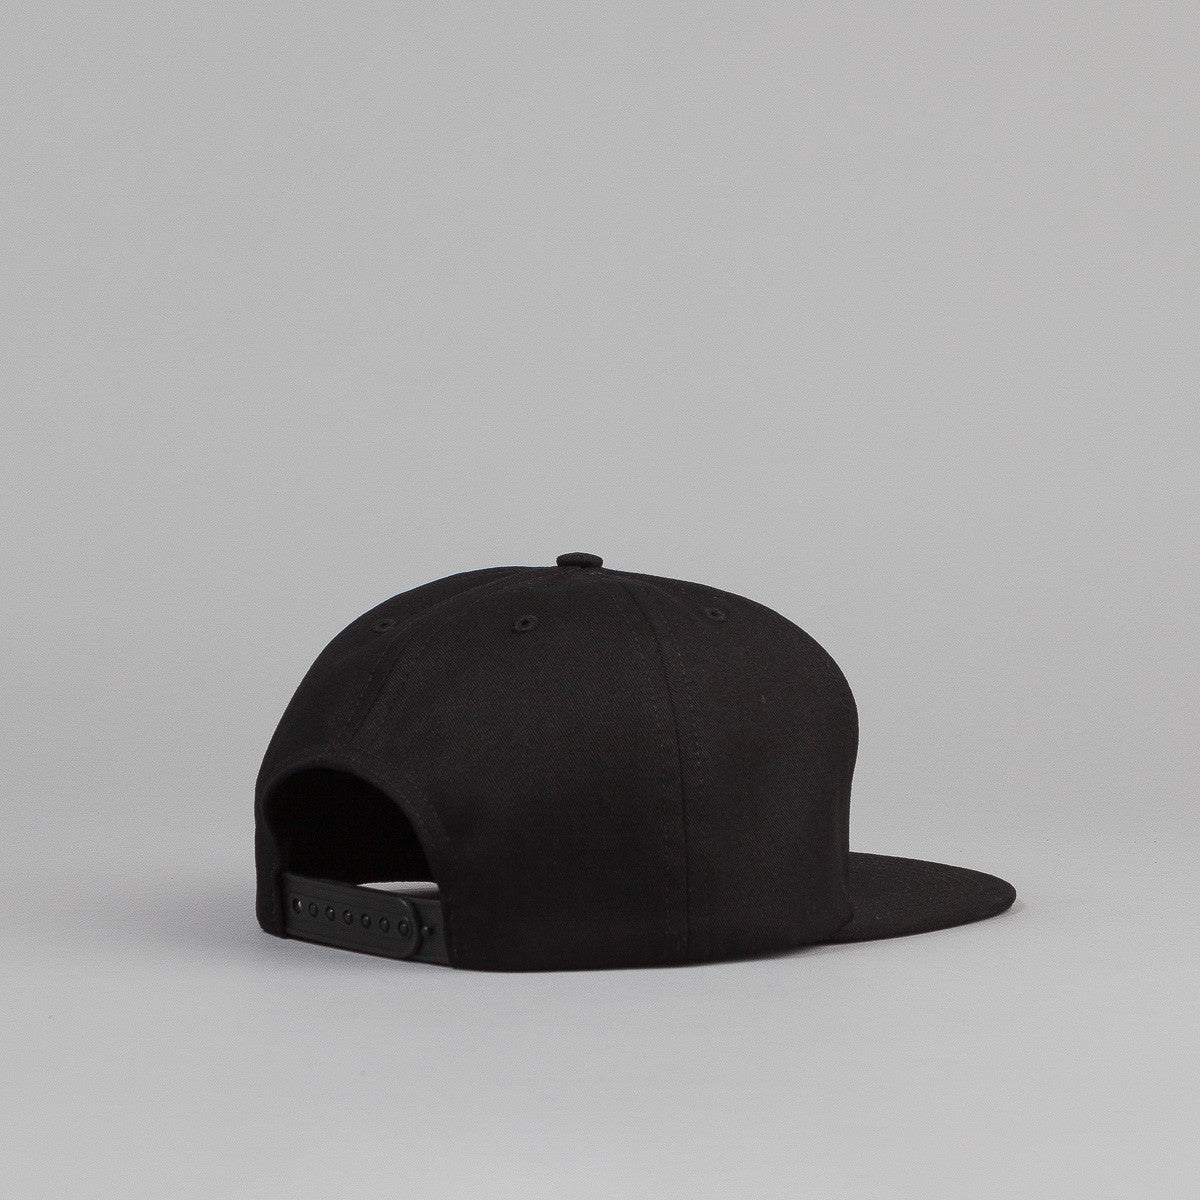 Parra Rapsongs 5 Panel Cap - Black